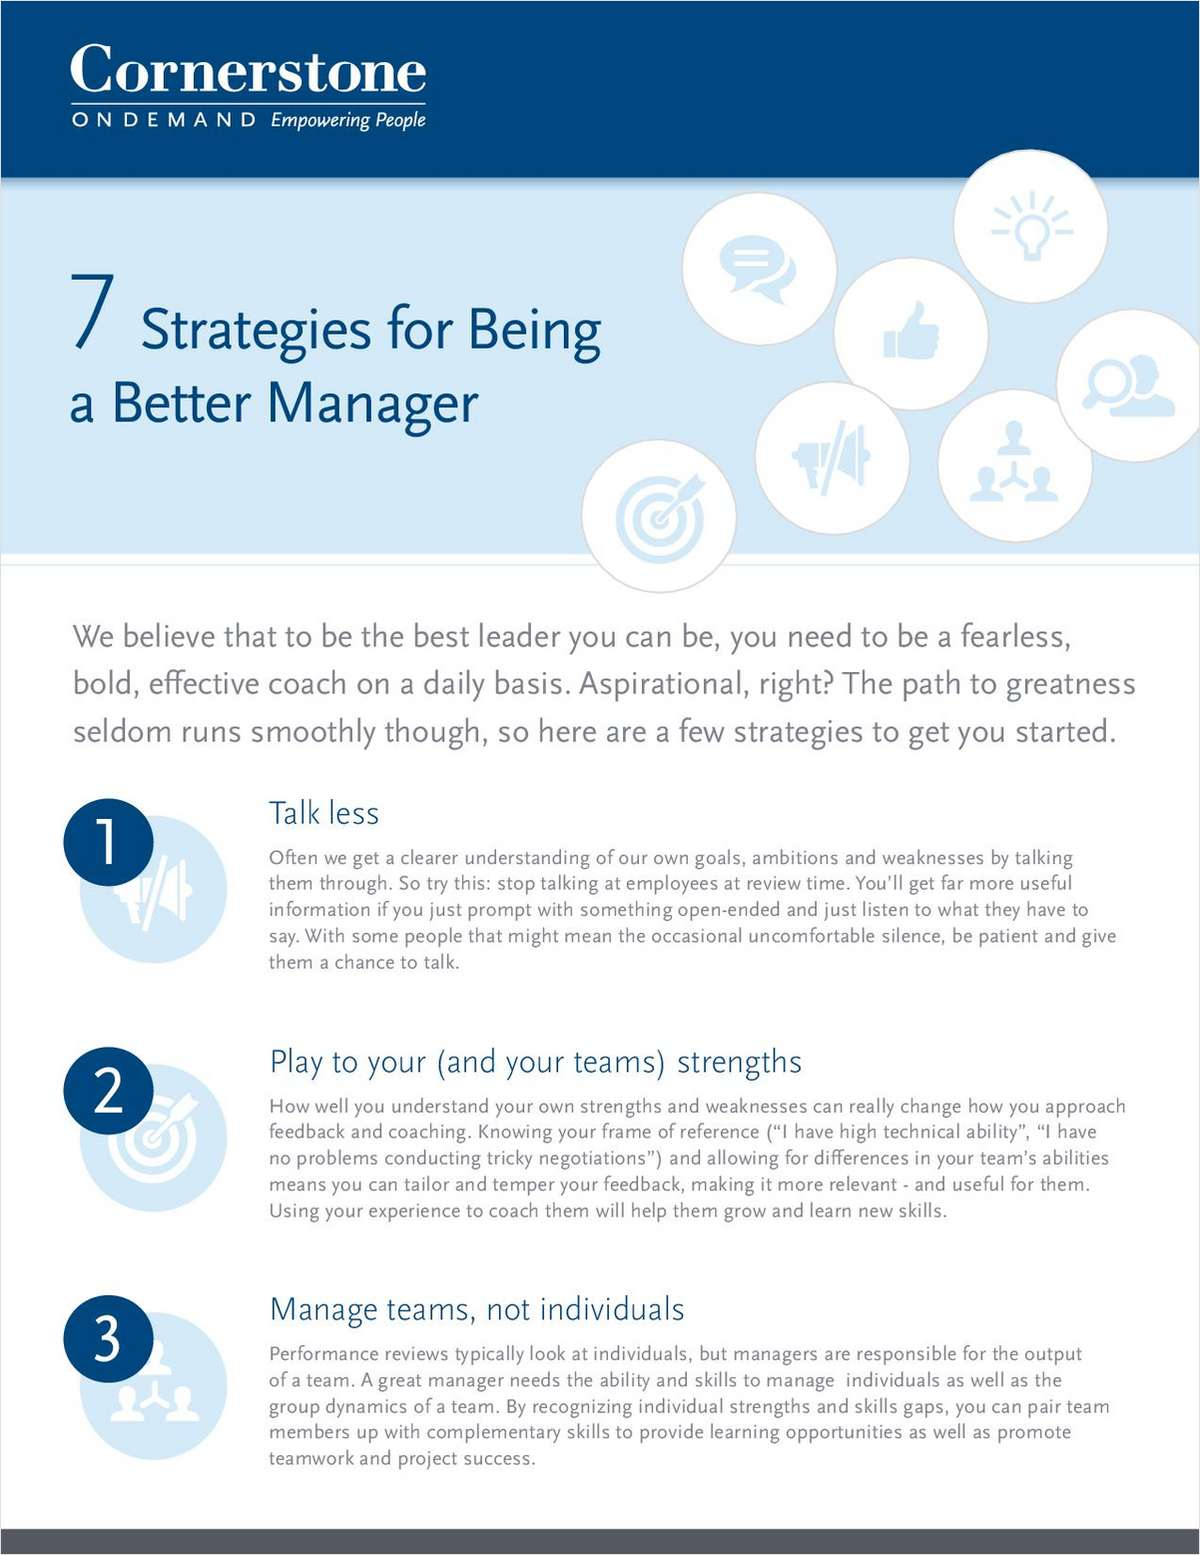 7 Strategies for Being a Better Manager